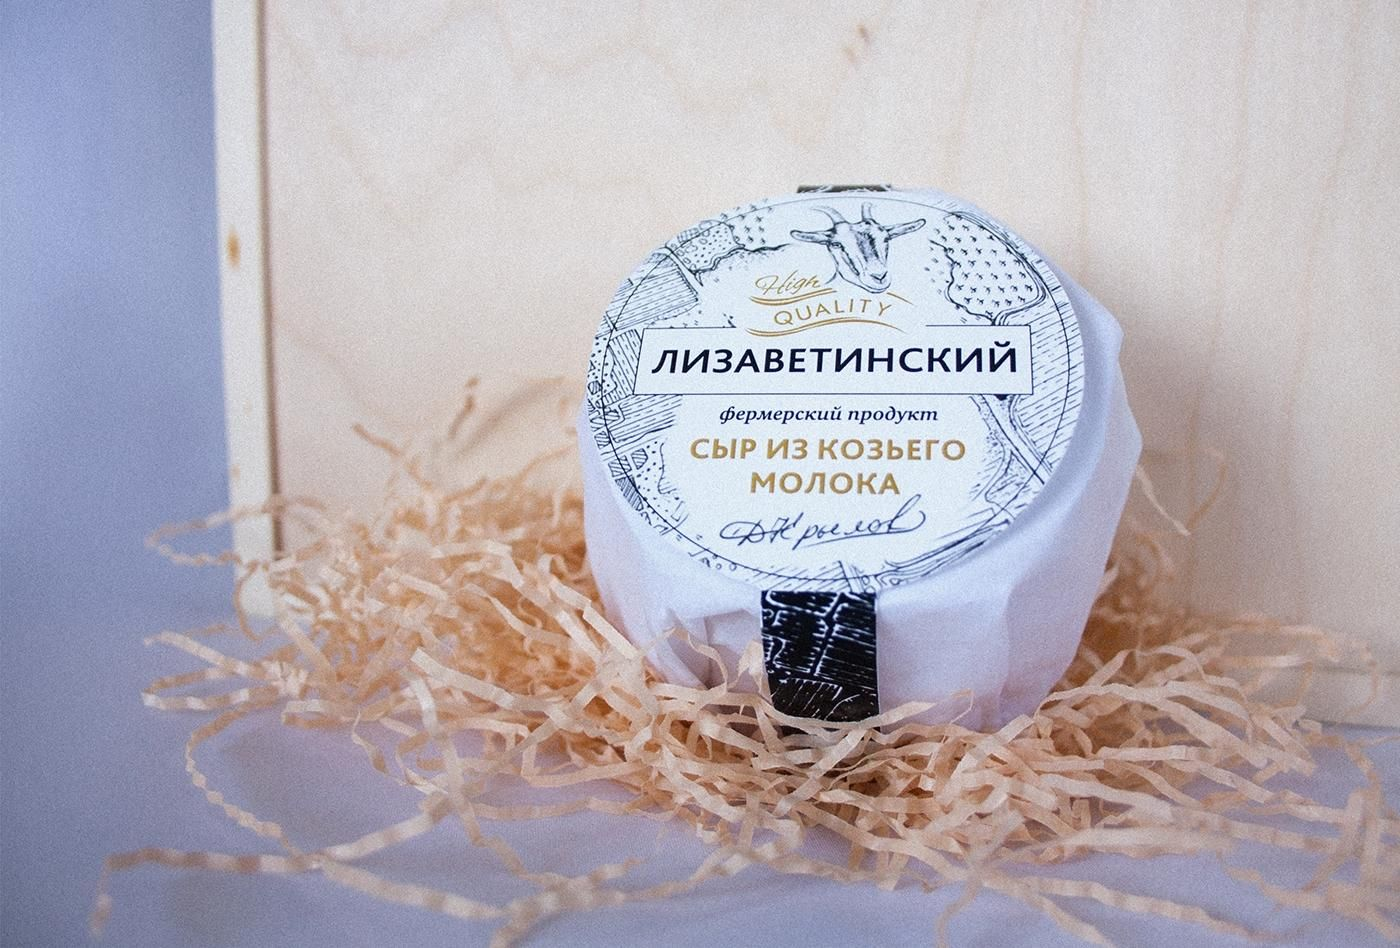 """A cheese """"Lizavetinskiy"""" is a unique farm product, which are manufactured in accordance with an age-old recipes. Grazing goats and milk production is carried out in accordance with the rules of organic farming without using any chemical fertilizers. The packaging should reflect the benefits of the product, positioning it in a given niche. A head of cheese is wrapped in a thin paper, which contains information about the main stages of cheese production. To reflect the local production a real…"""